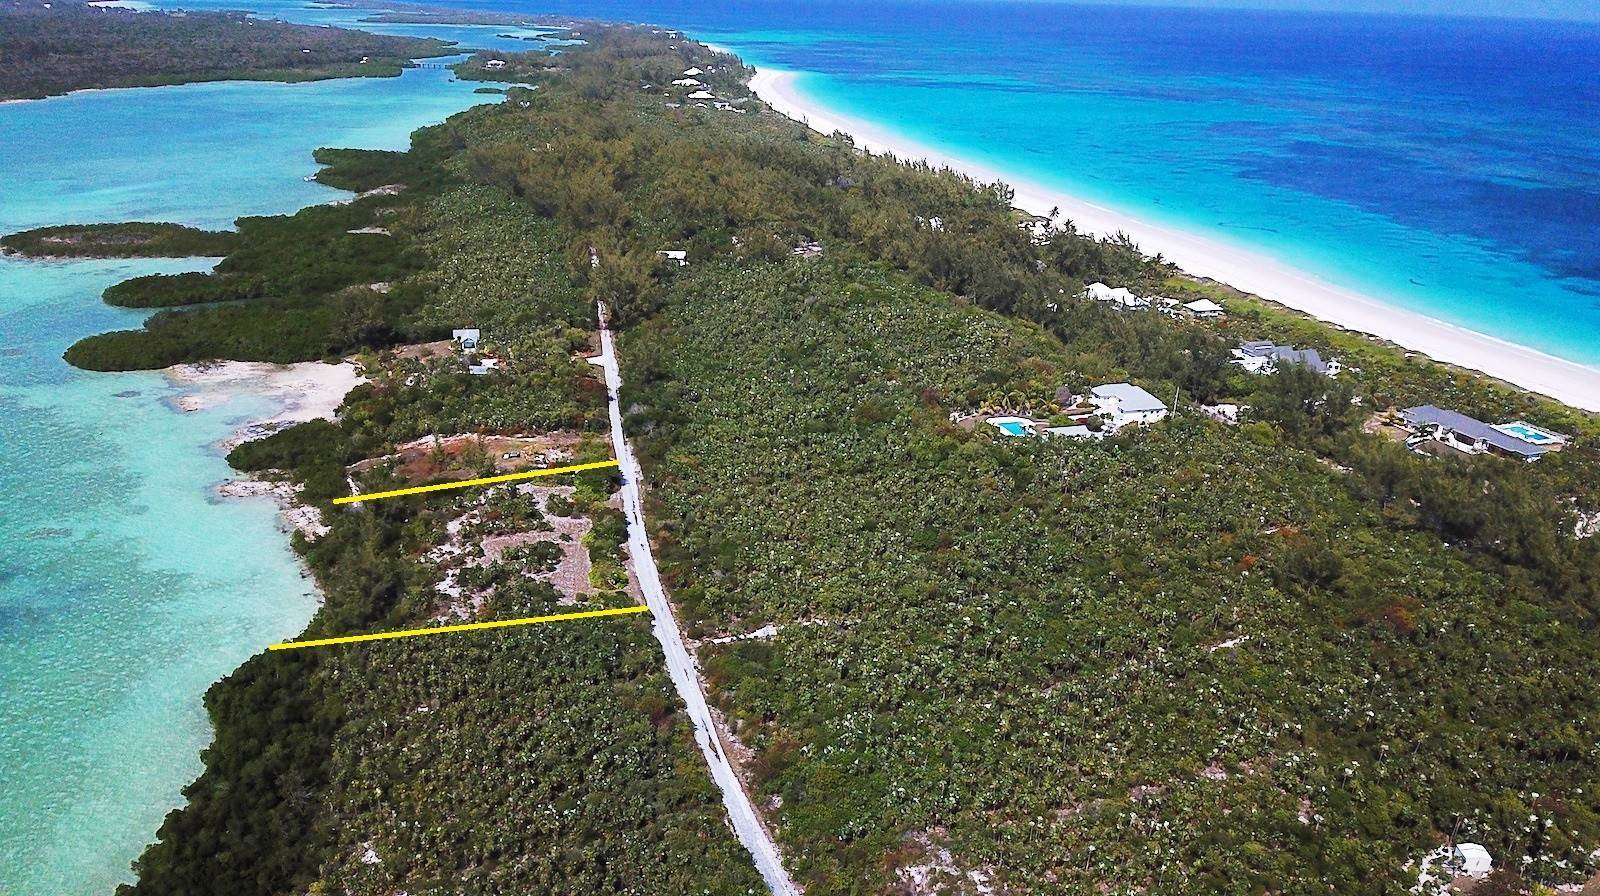 Terreno por un Venta en Fabulous Windermere - Savannah Sound Lots Sold together - MLS 42844 Windermere Island, Eleuthera, Bahamas